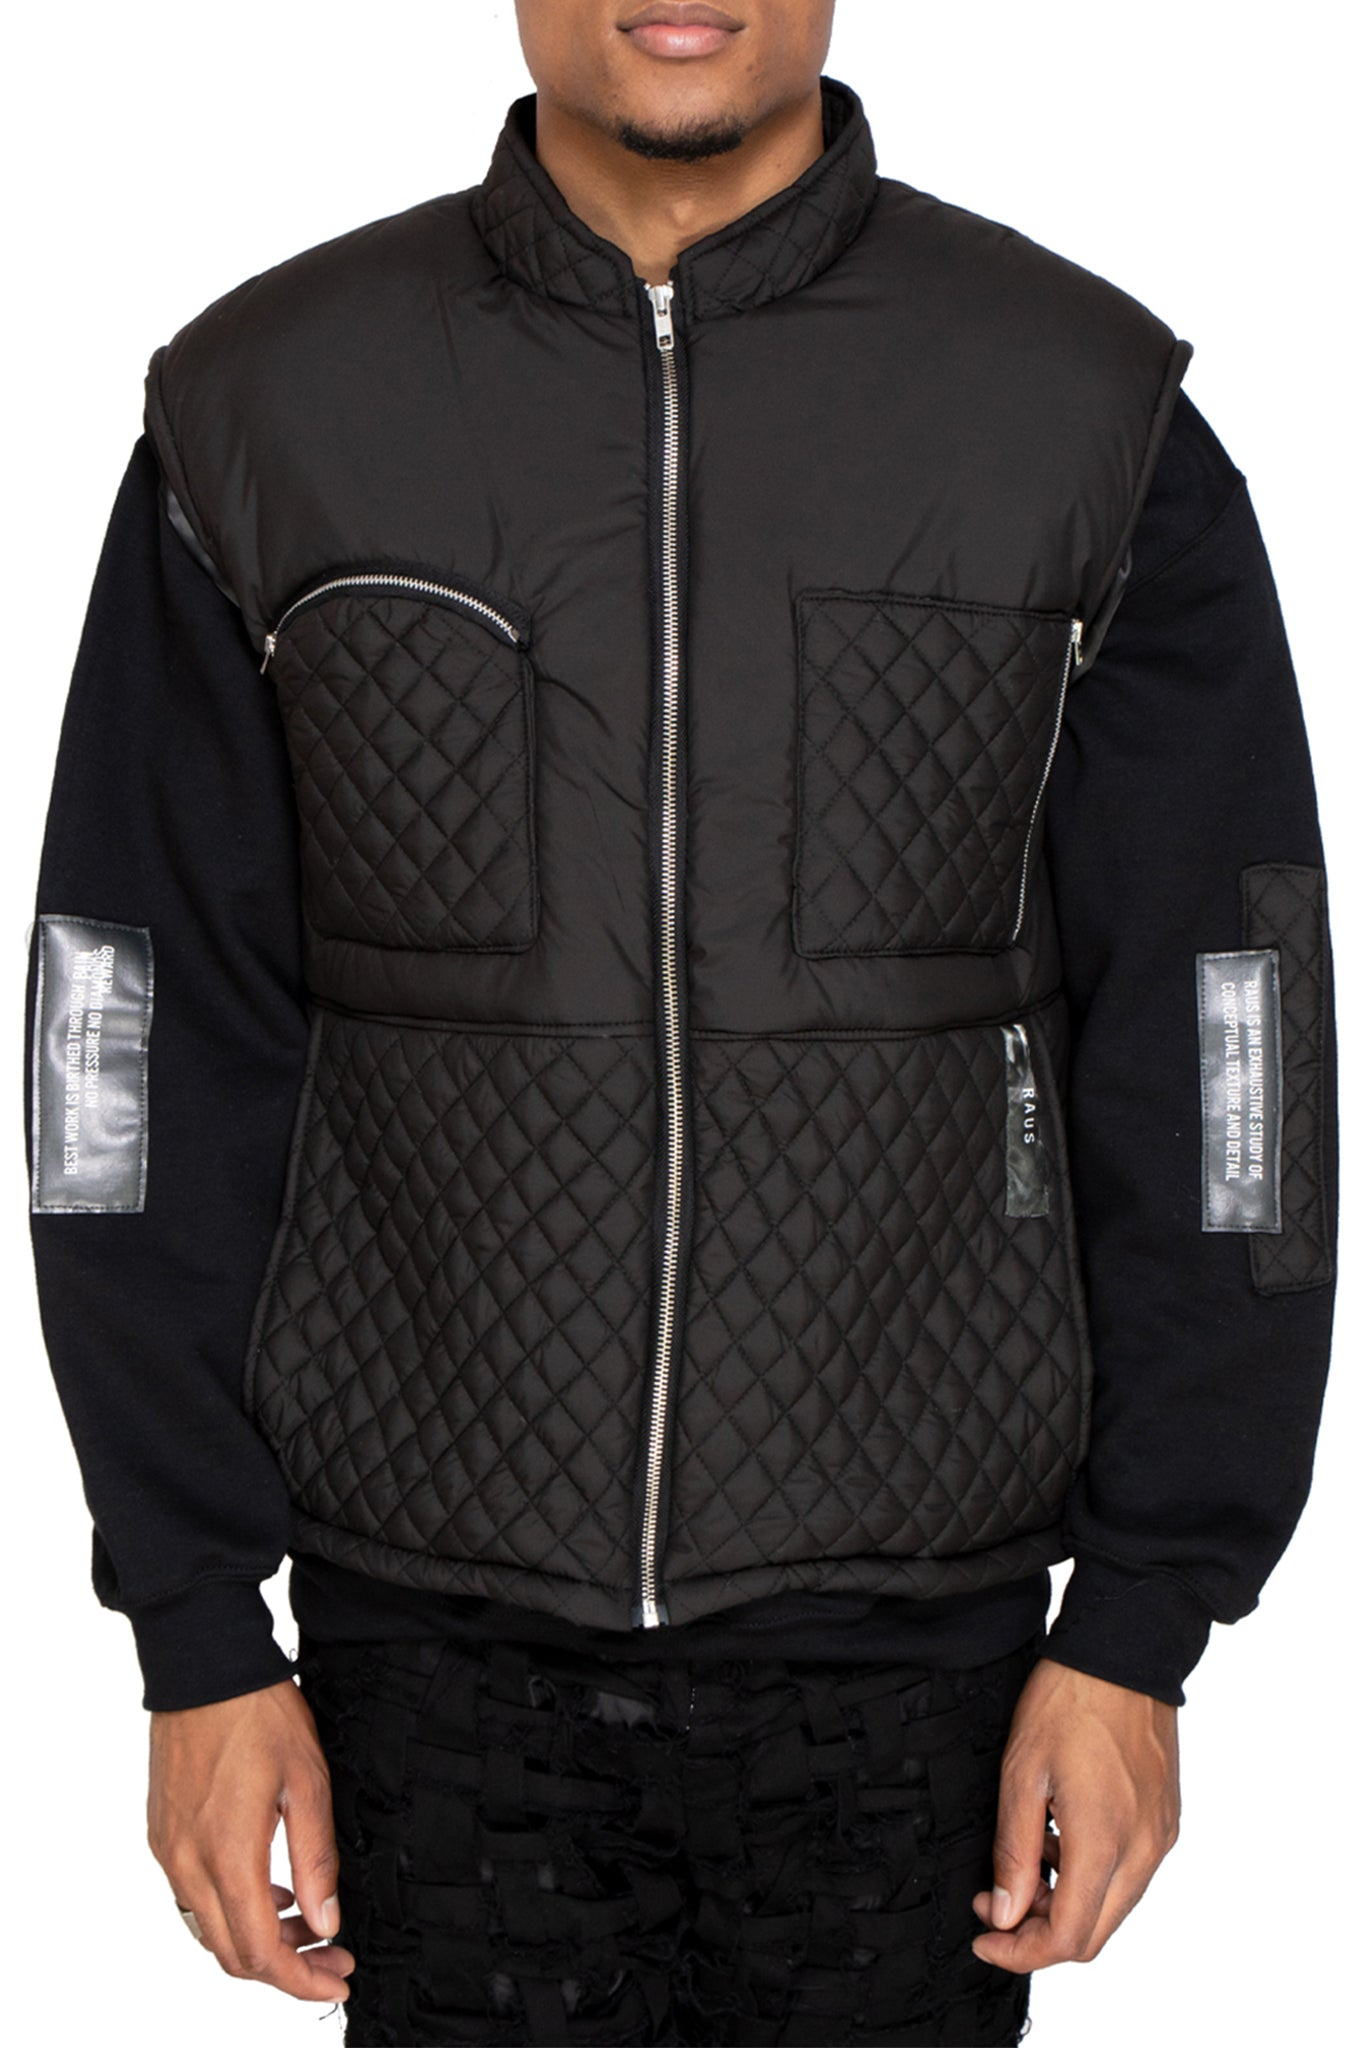 Raus Black Quilted Soft Nylon Panelled Gilet